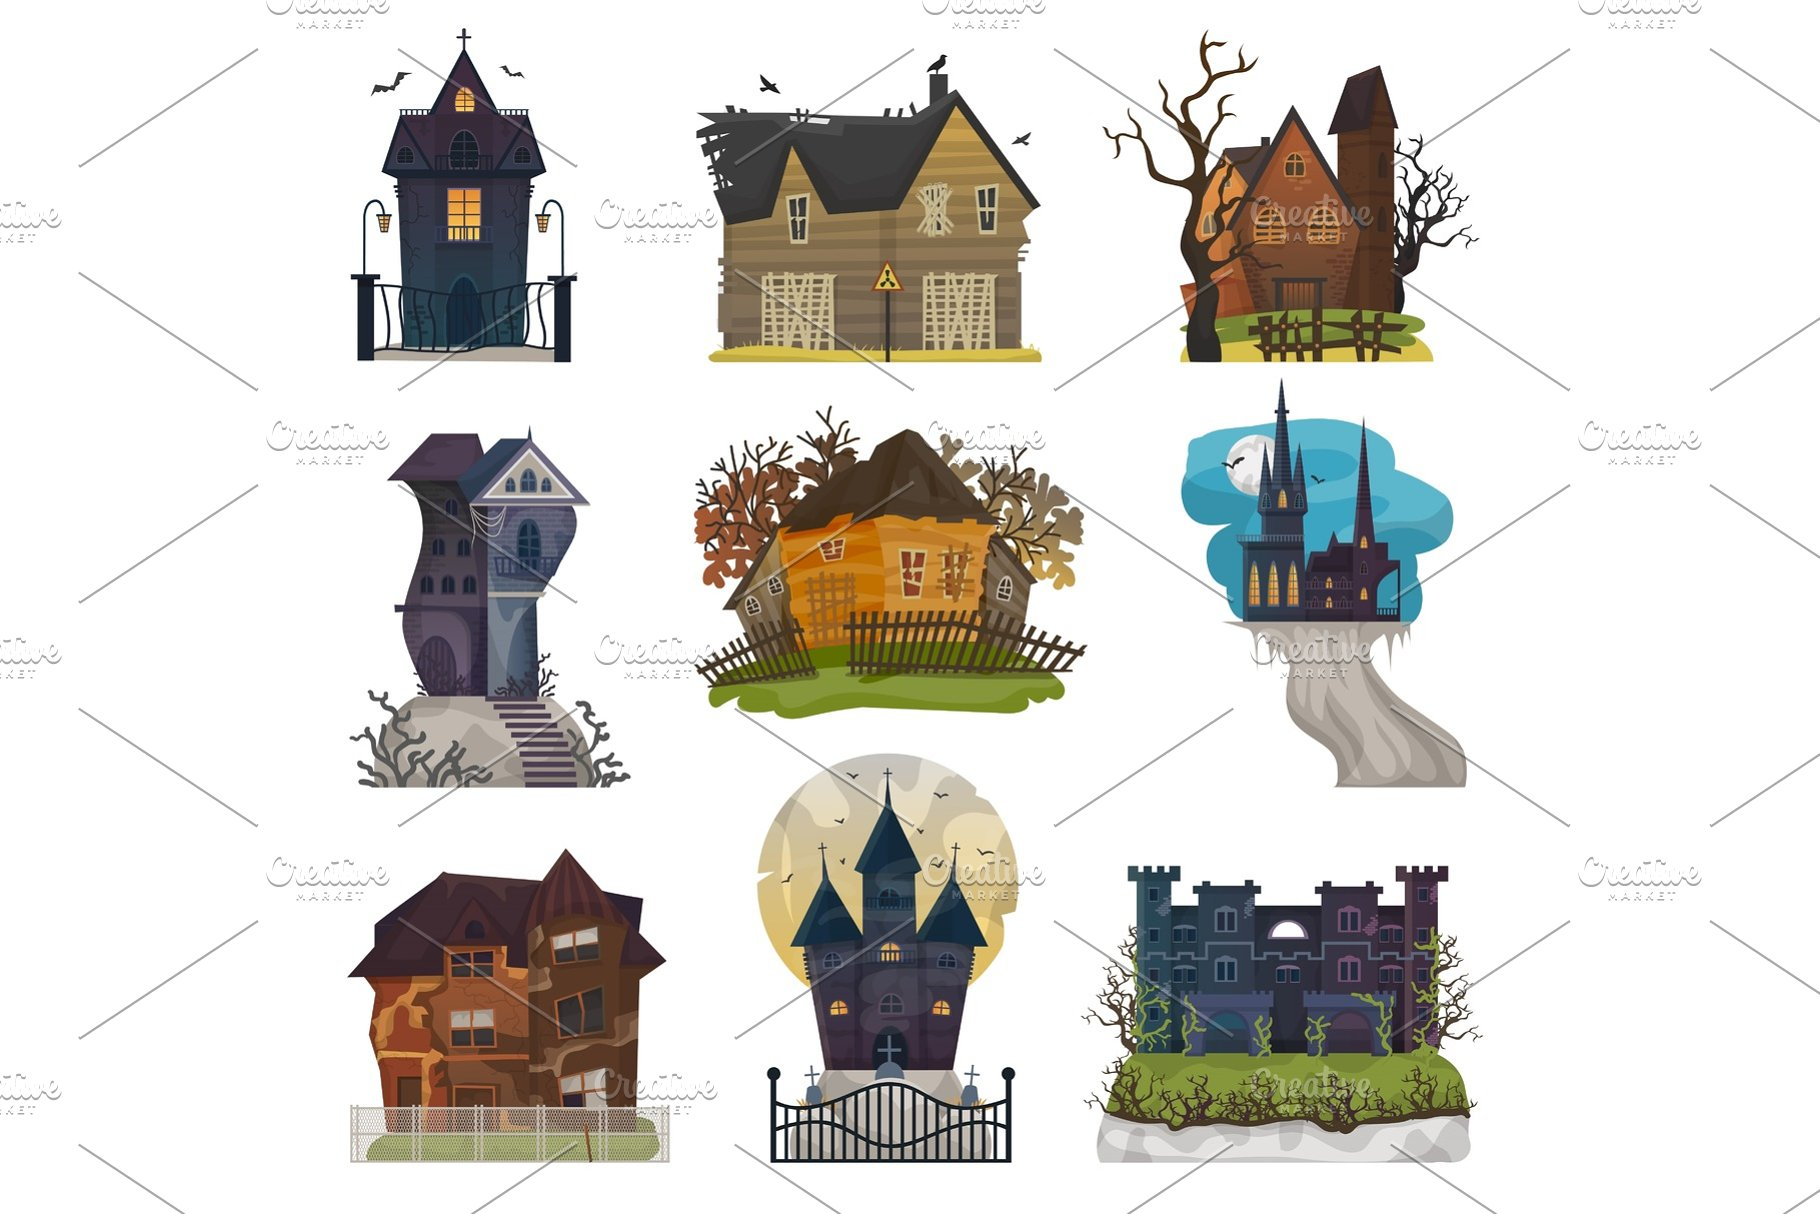 Halloween Spooky House.Spooky House Vector Haunted Castle With Dark Scary Horror Nightmare On Halloween Moonlight Mystery Illustration Nightly Set Of Creepy Building